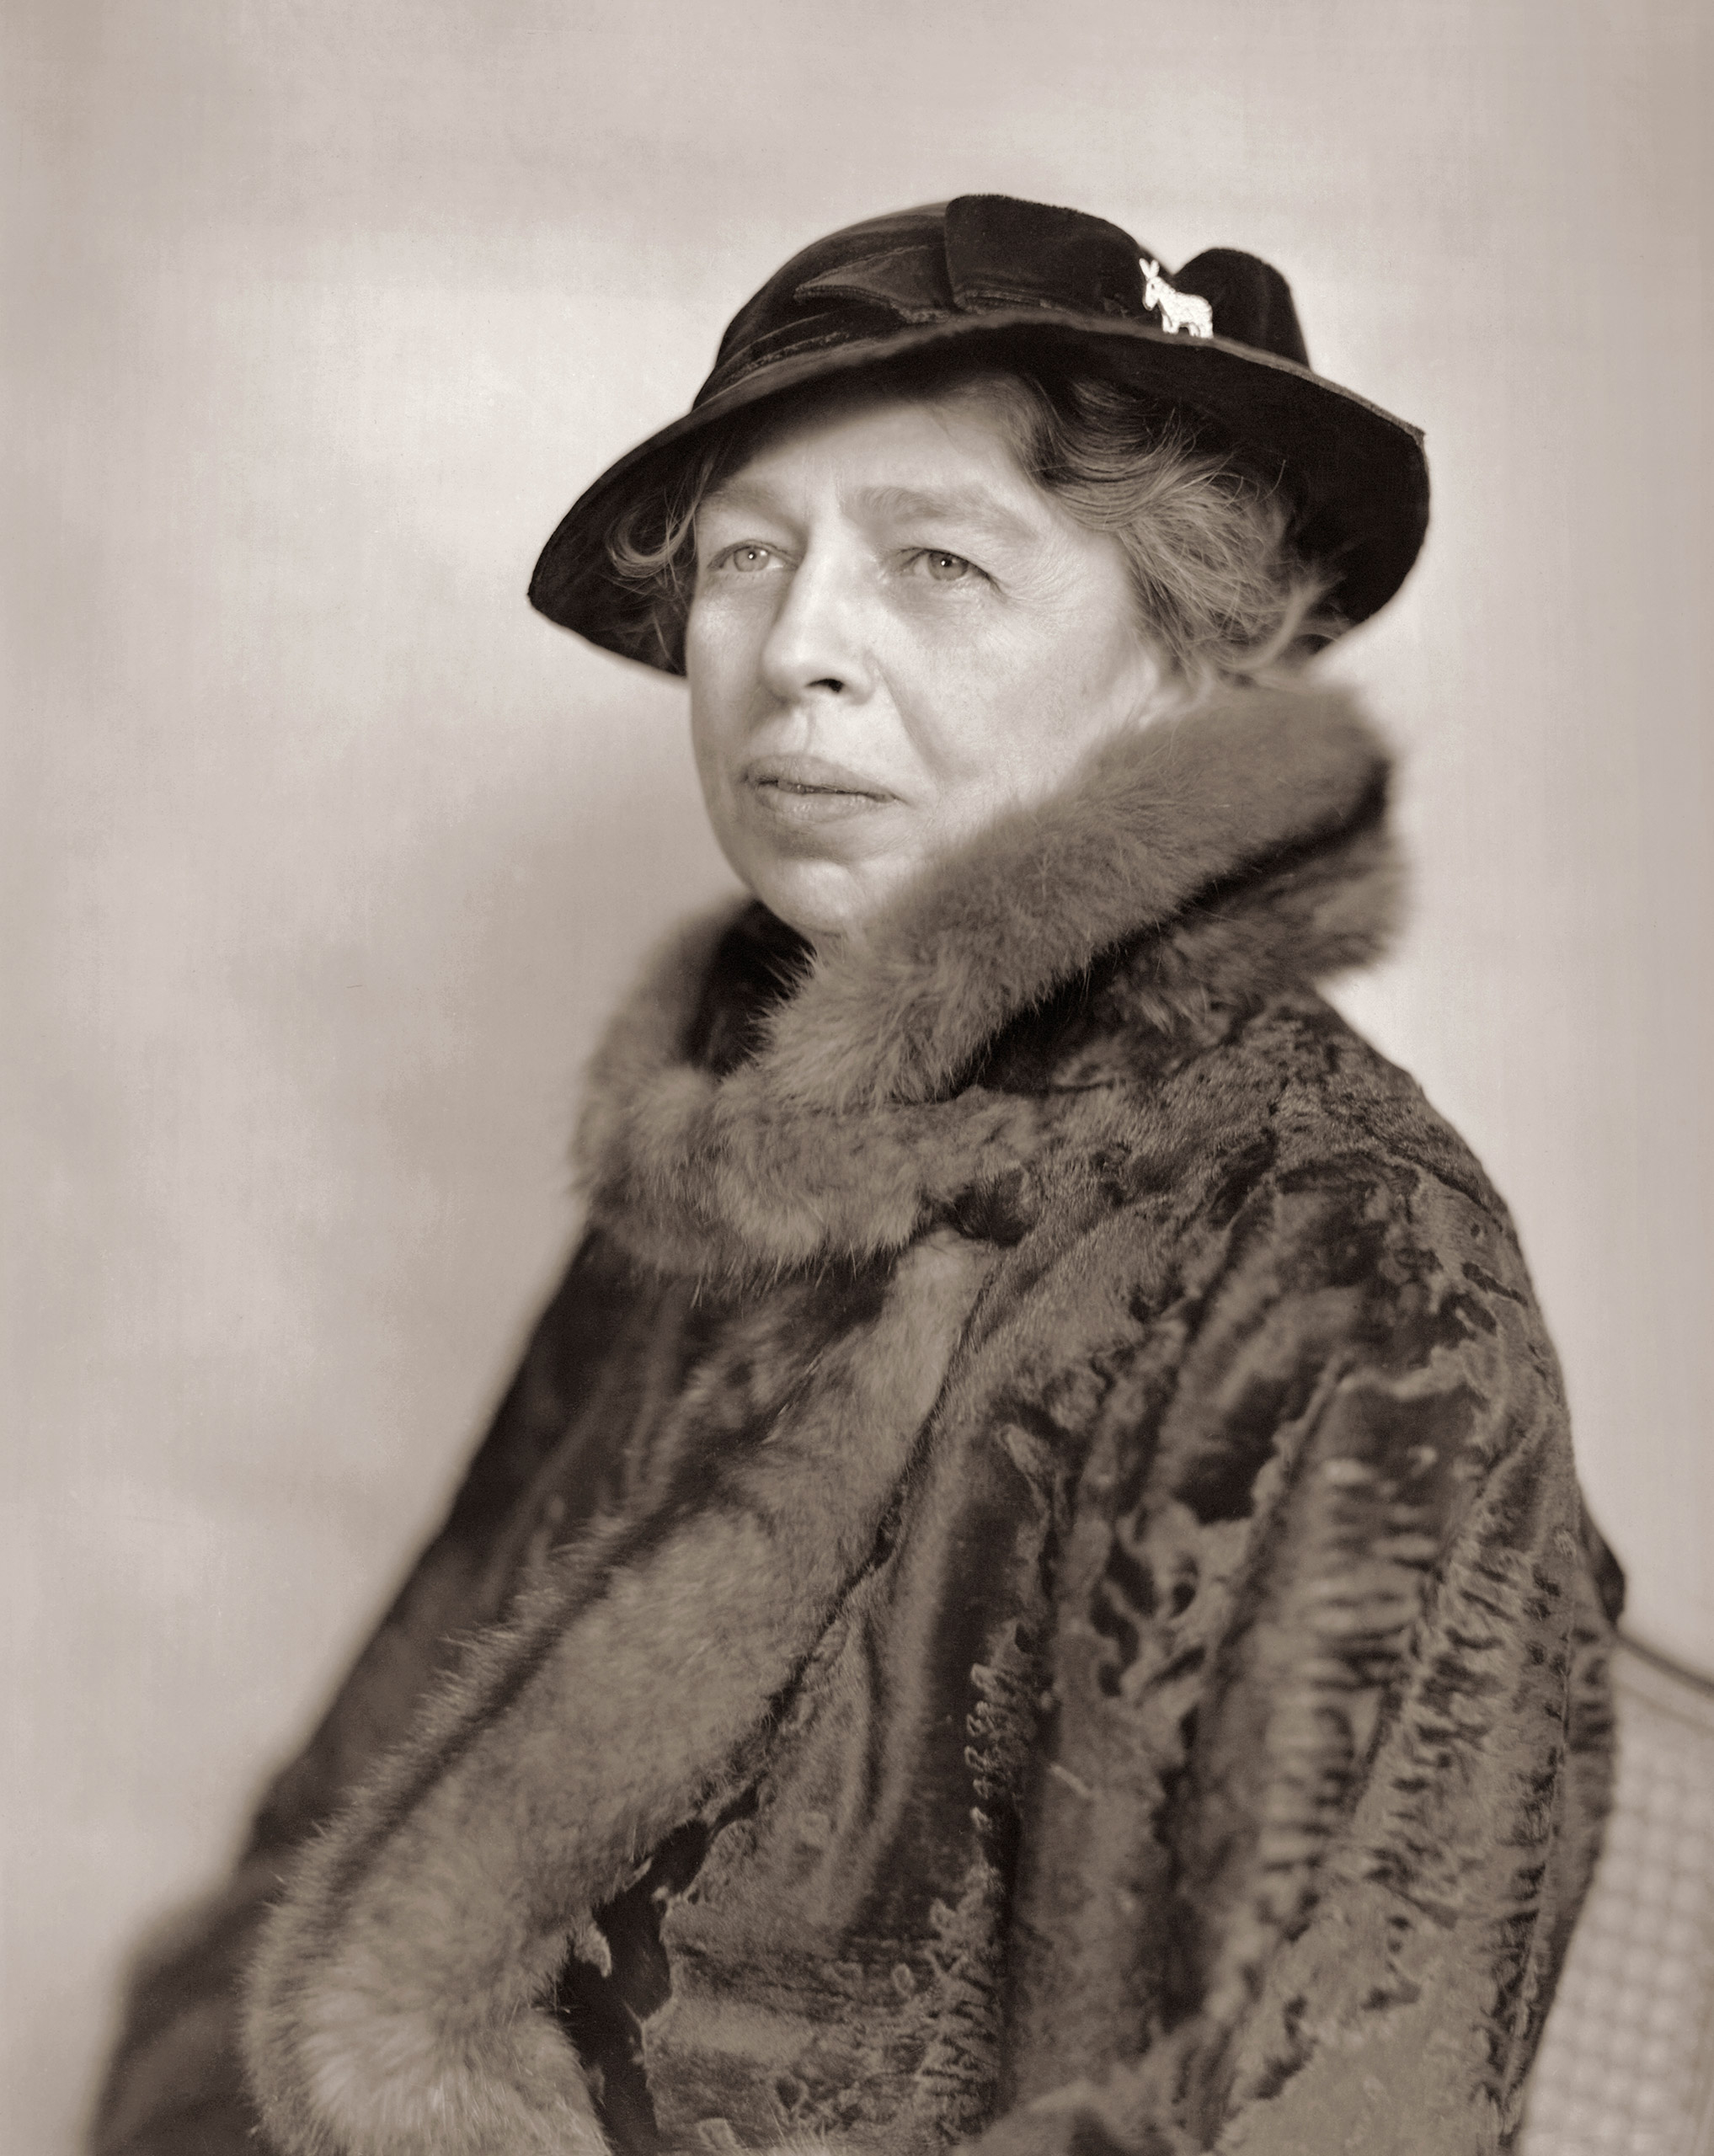 American diplomat and former First Lady Eleanor Roosevelt (1884 - 1962), circa early to mid 1940s.